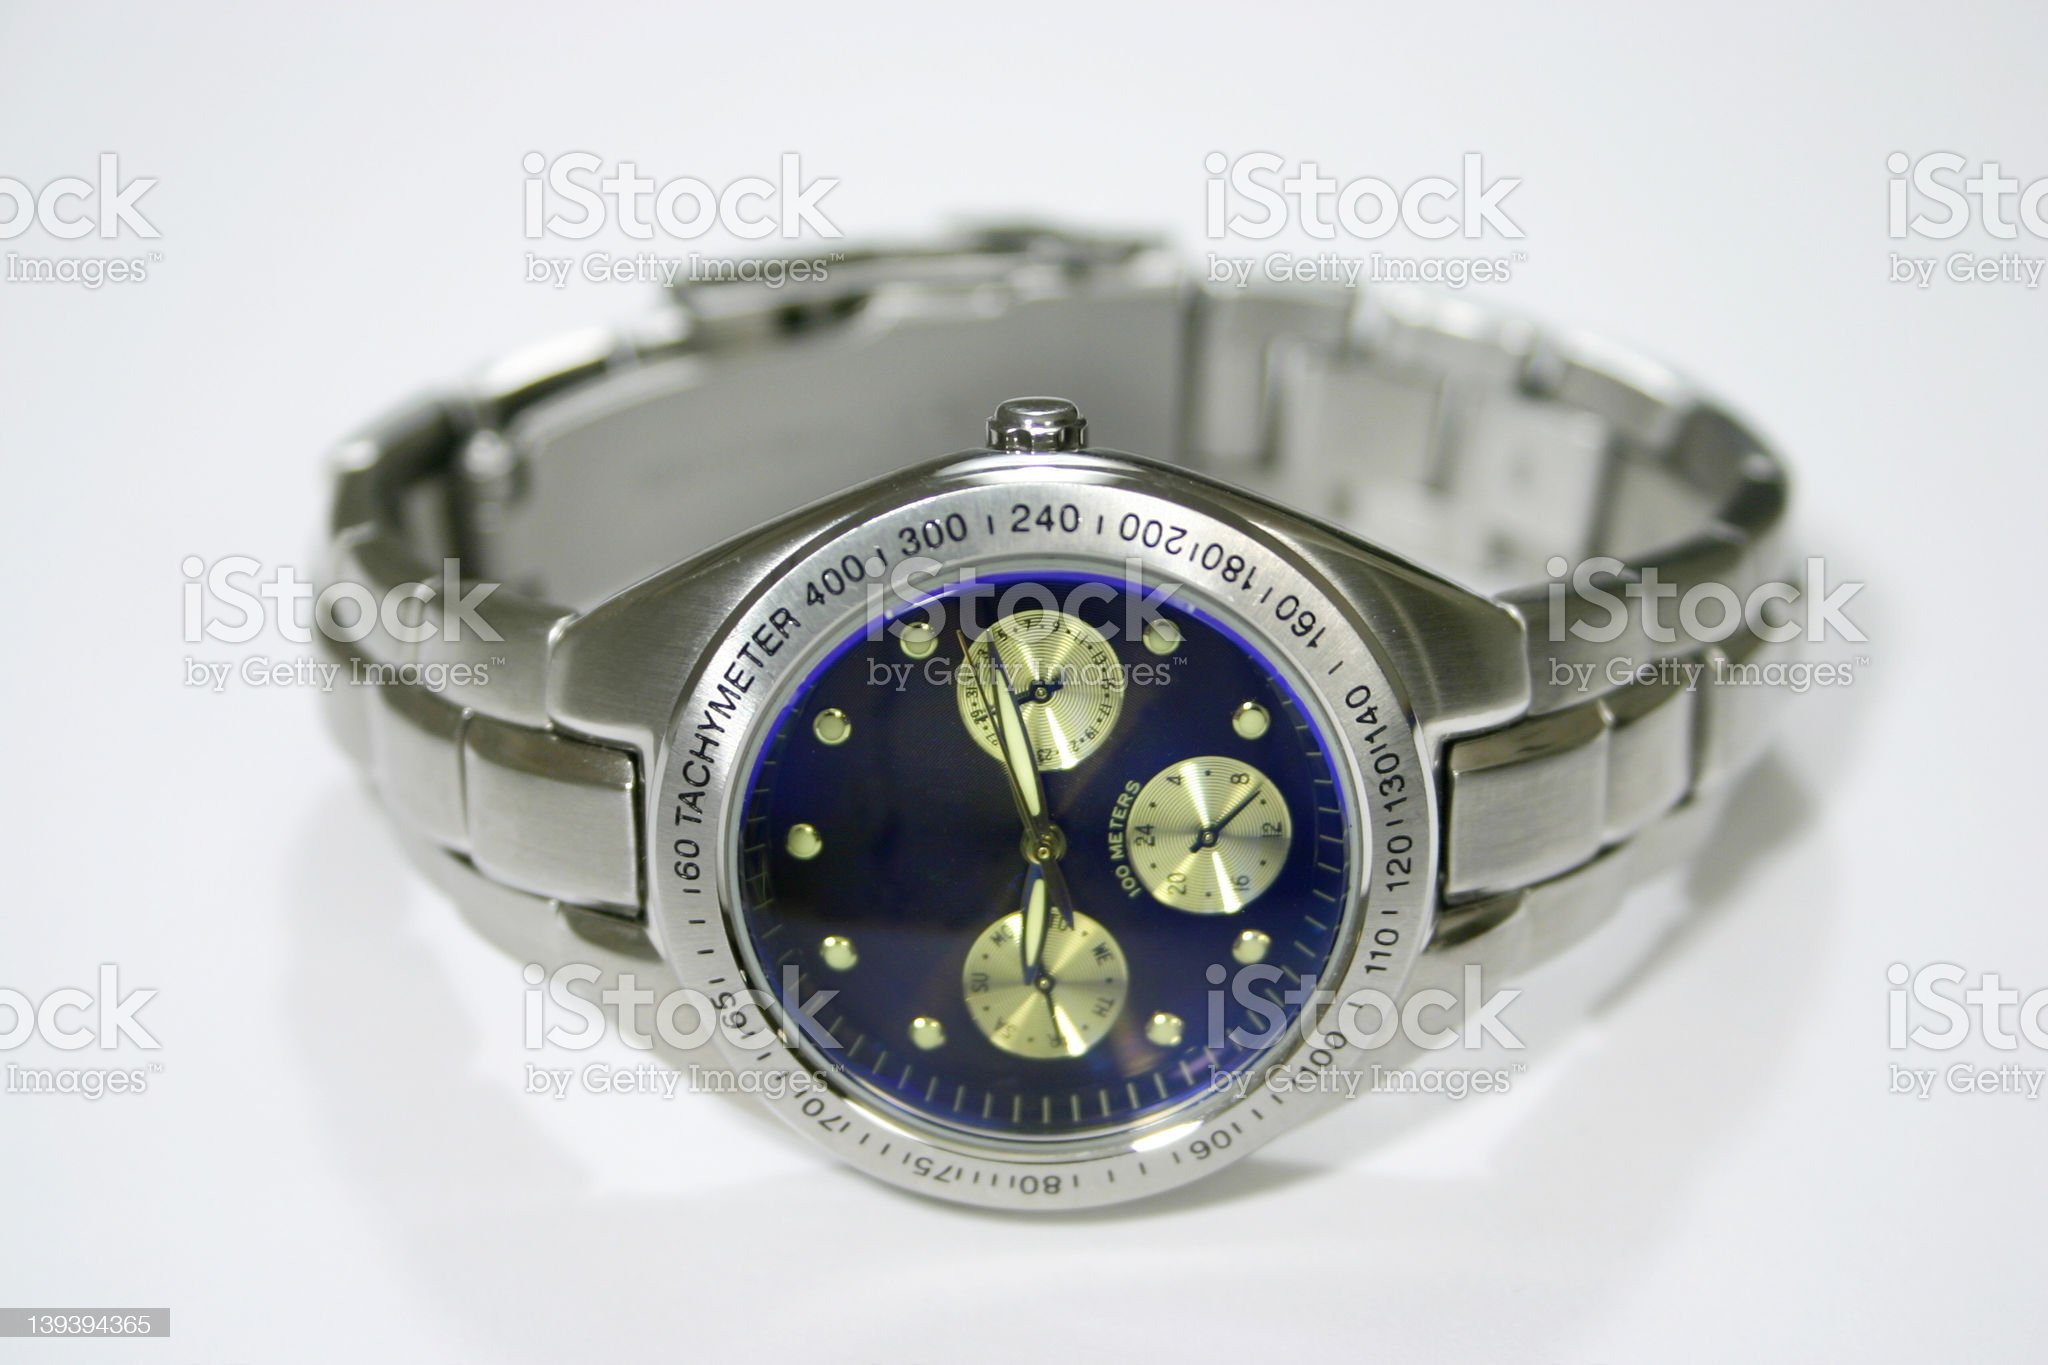 Wrist Watch Closeup royalty-free stock photo